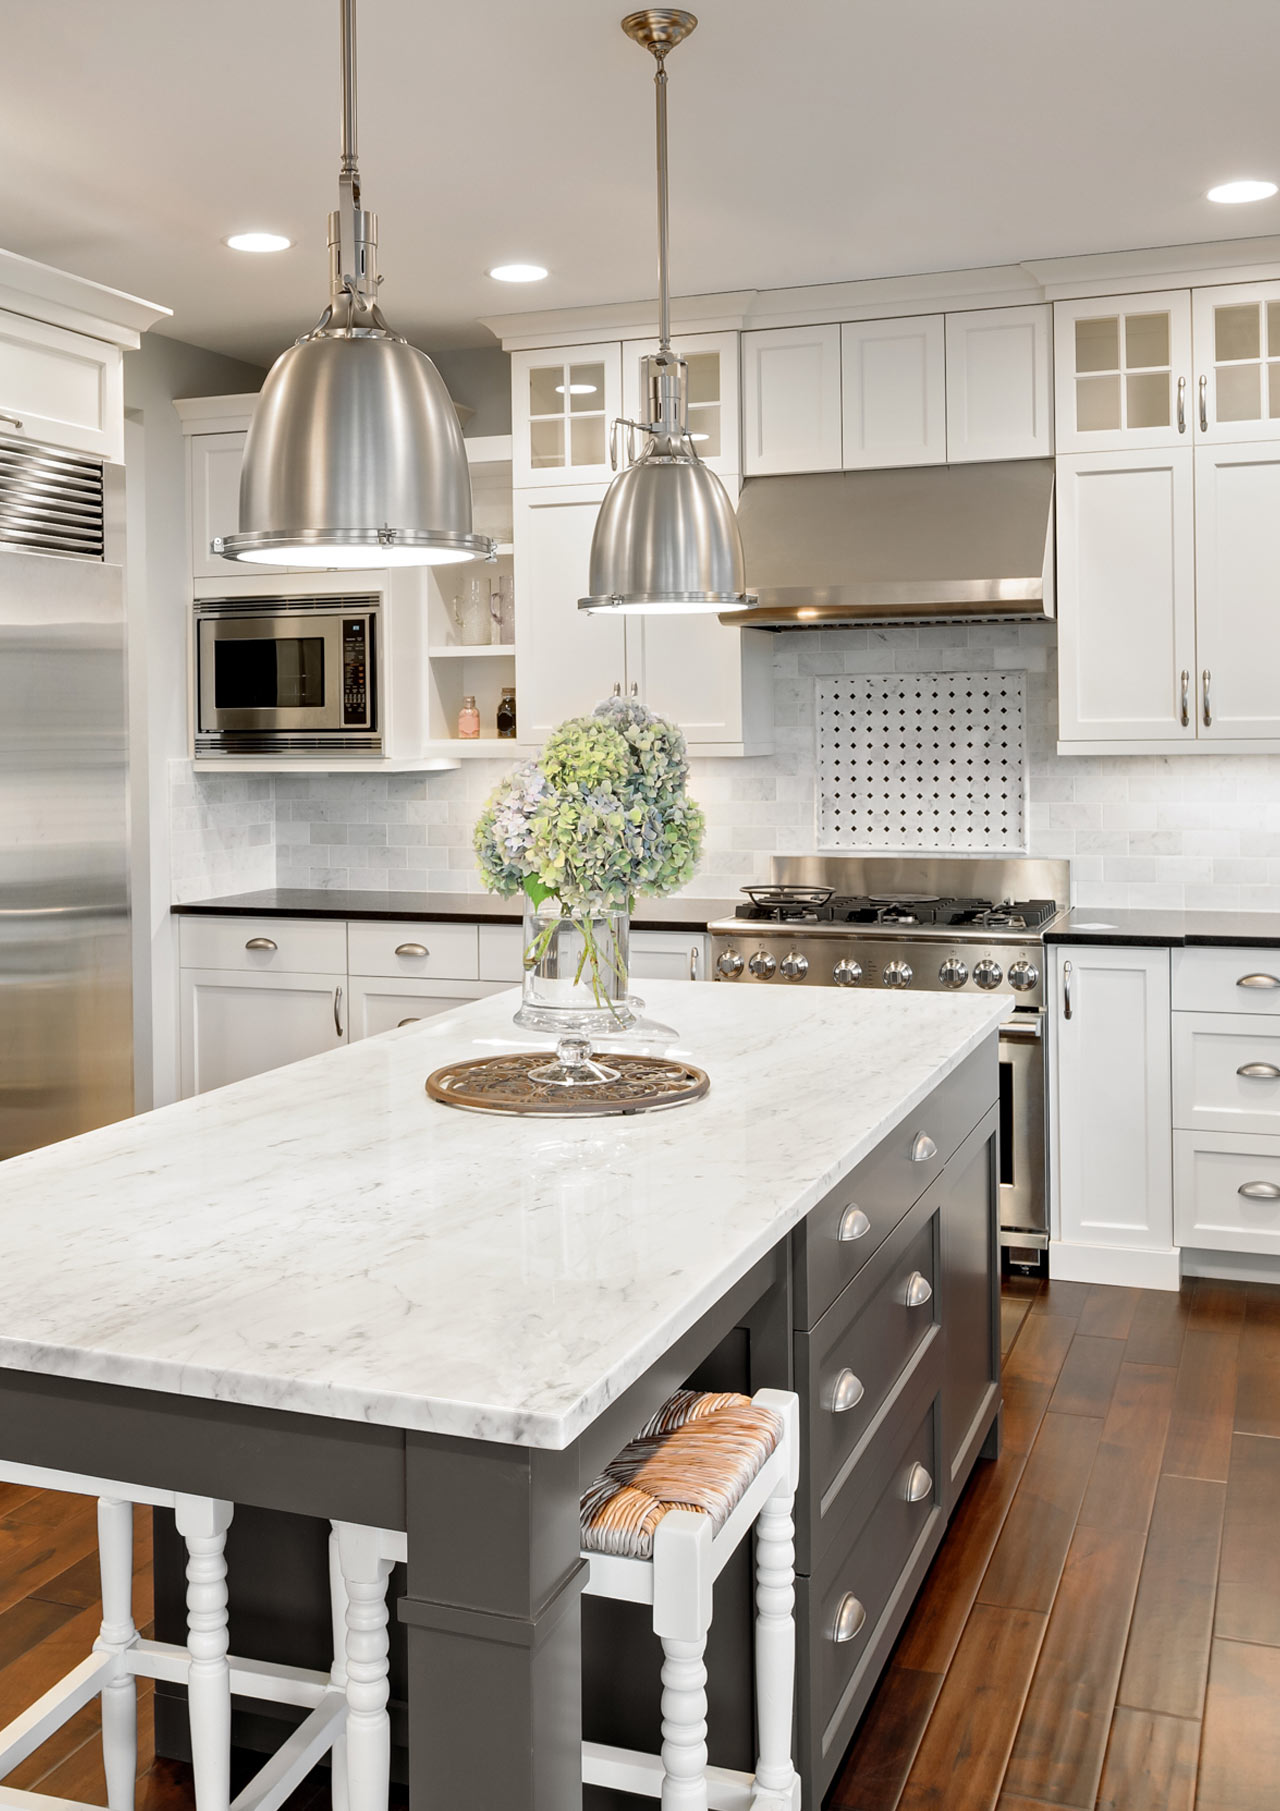 White Orchid Home Staging - Beautiful Kitchen Spaces - image